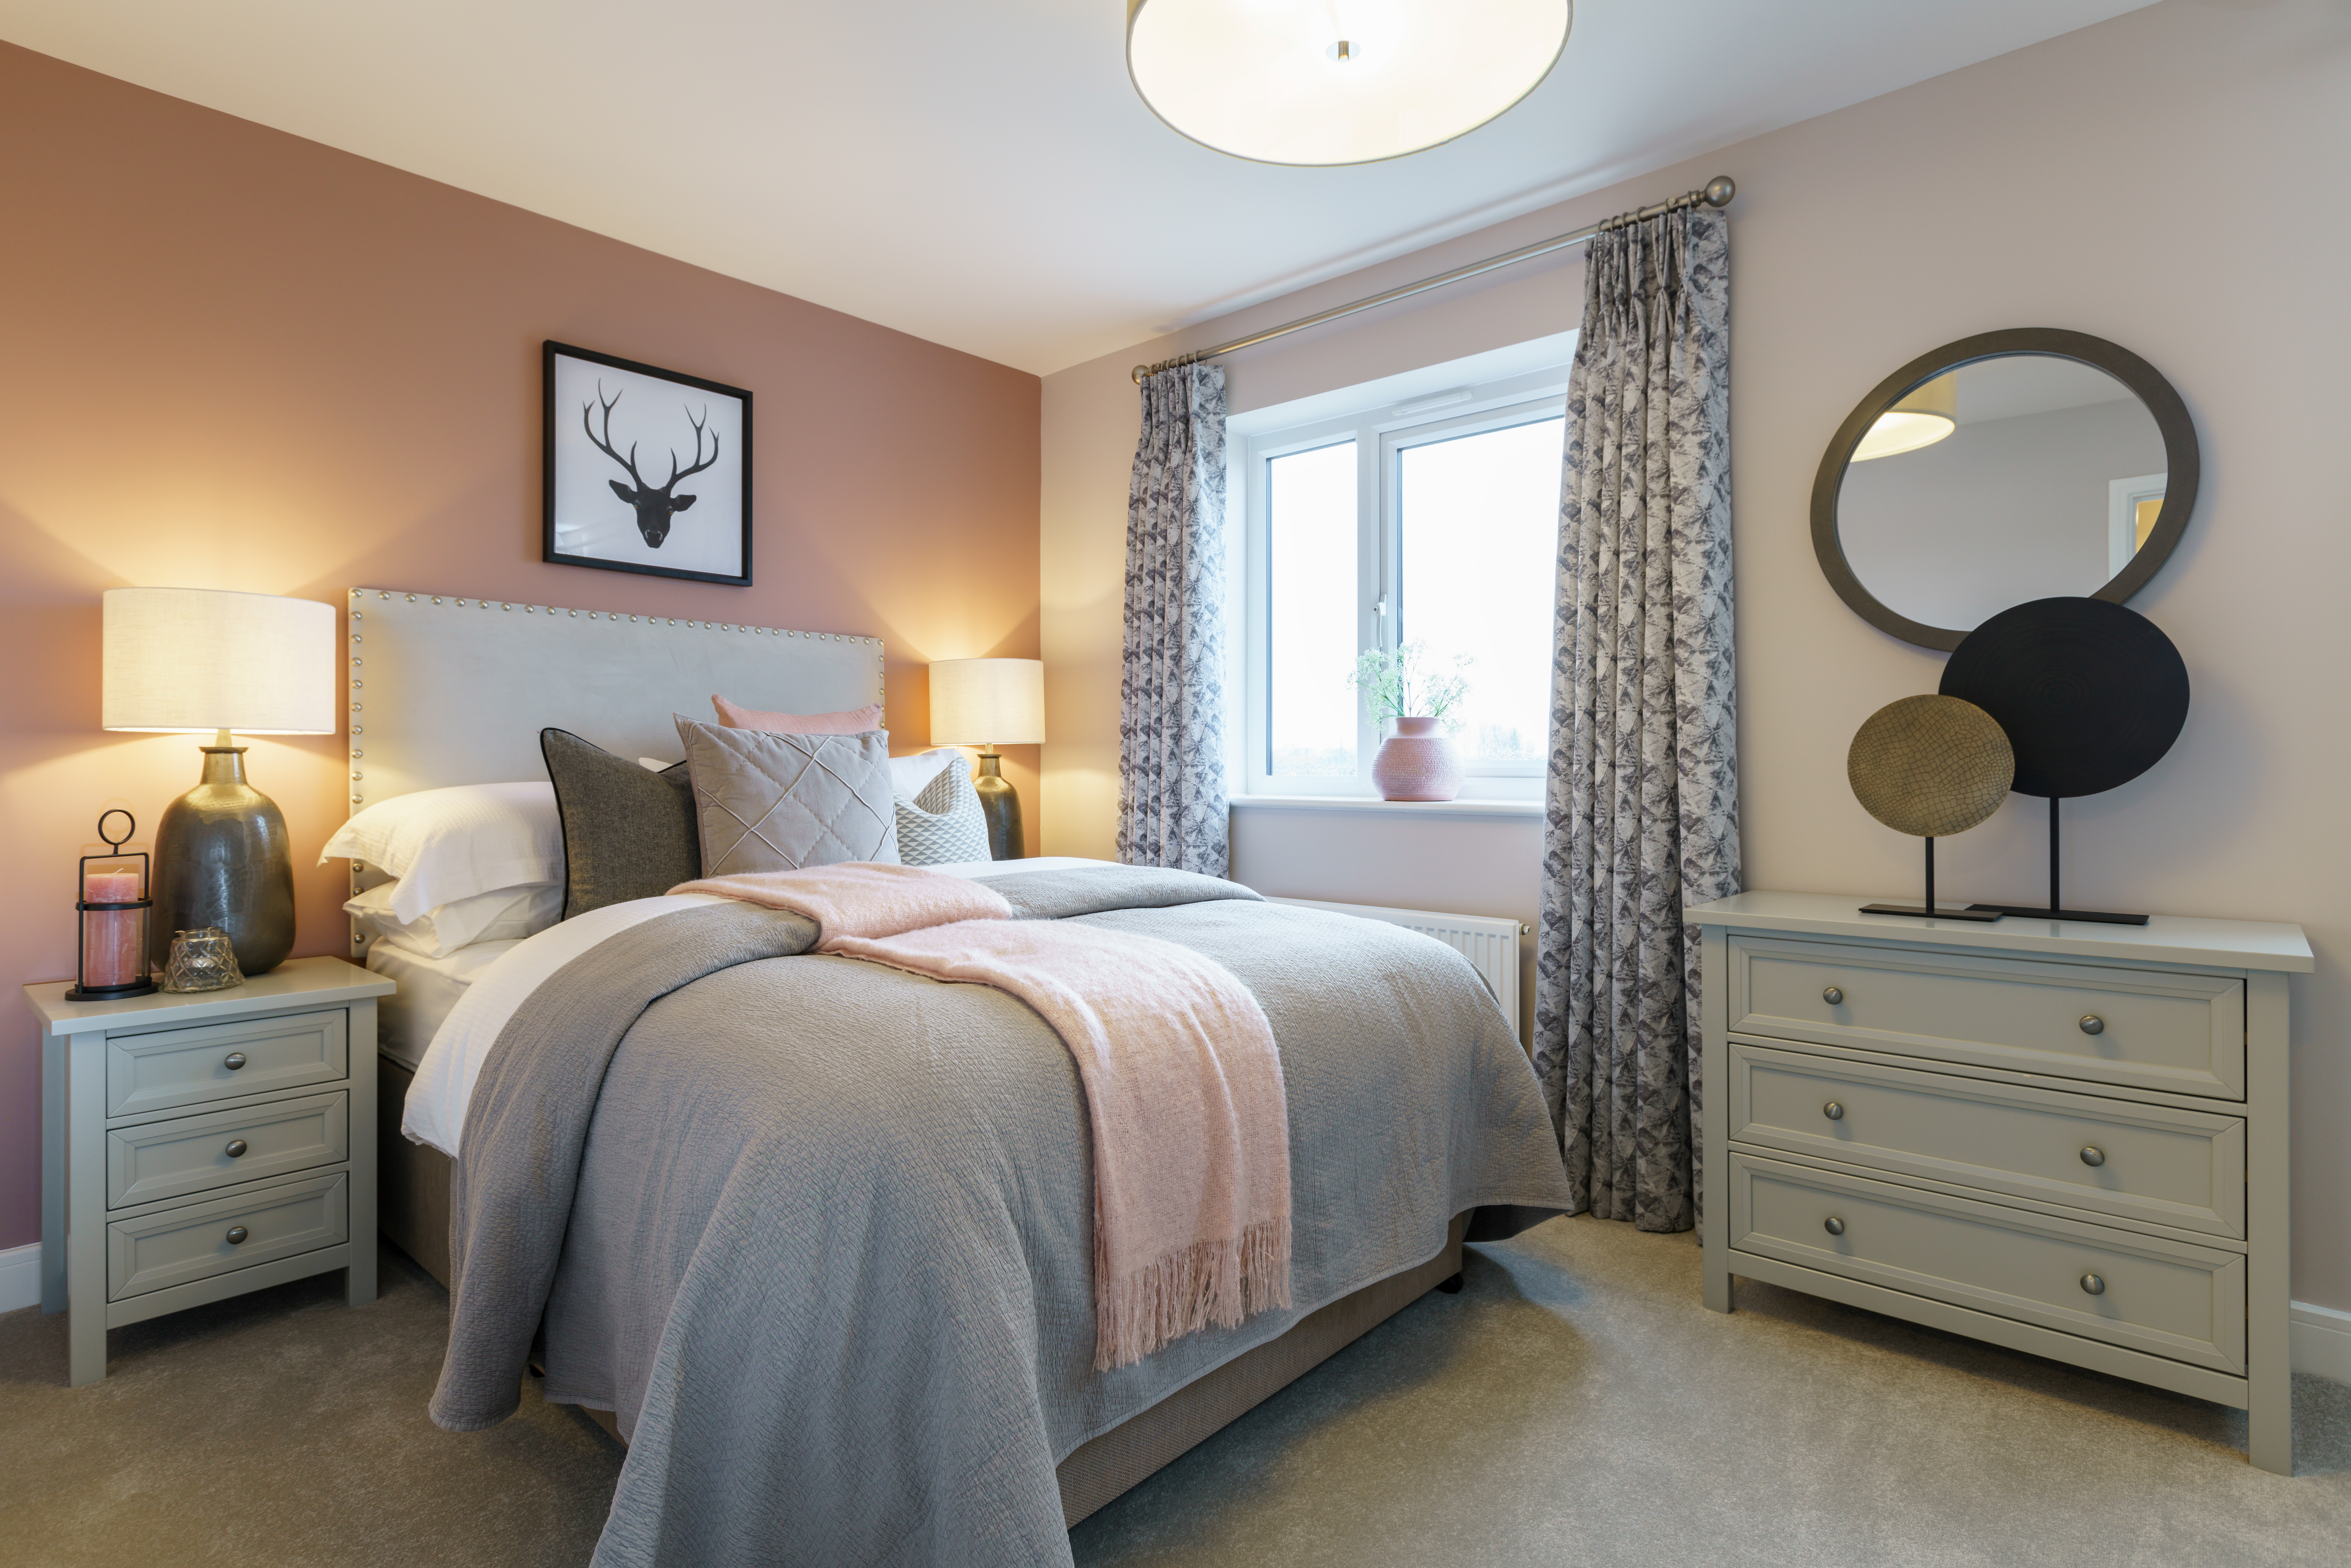 TW_EA_Varsity Grange_PC32_Belbury_Bedroom 2 1